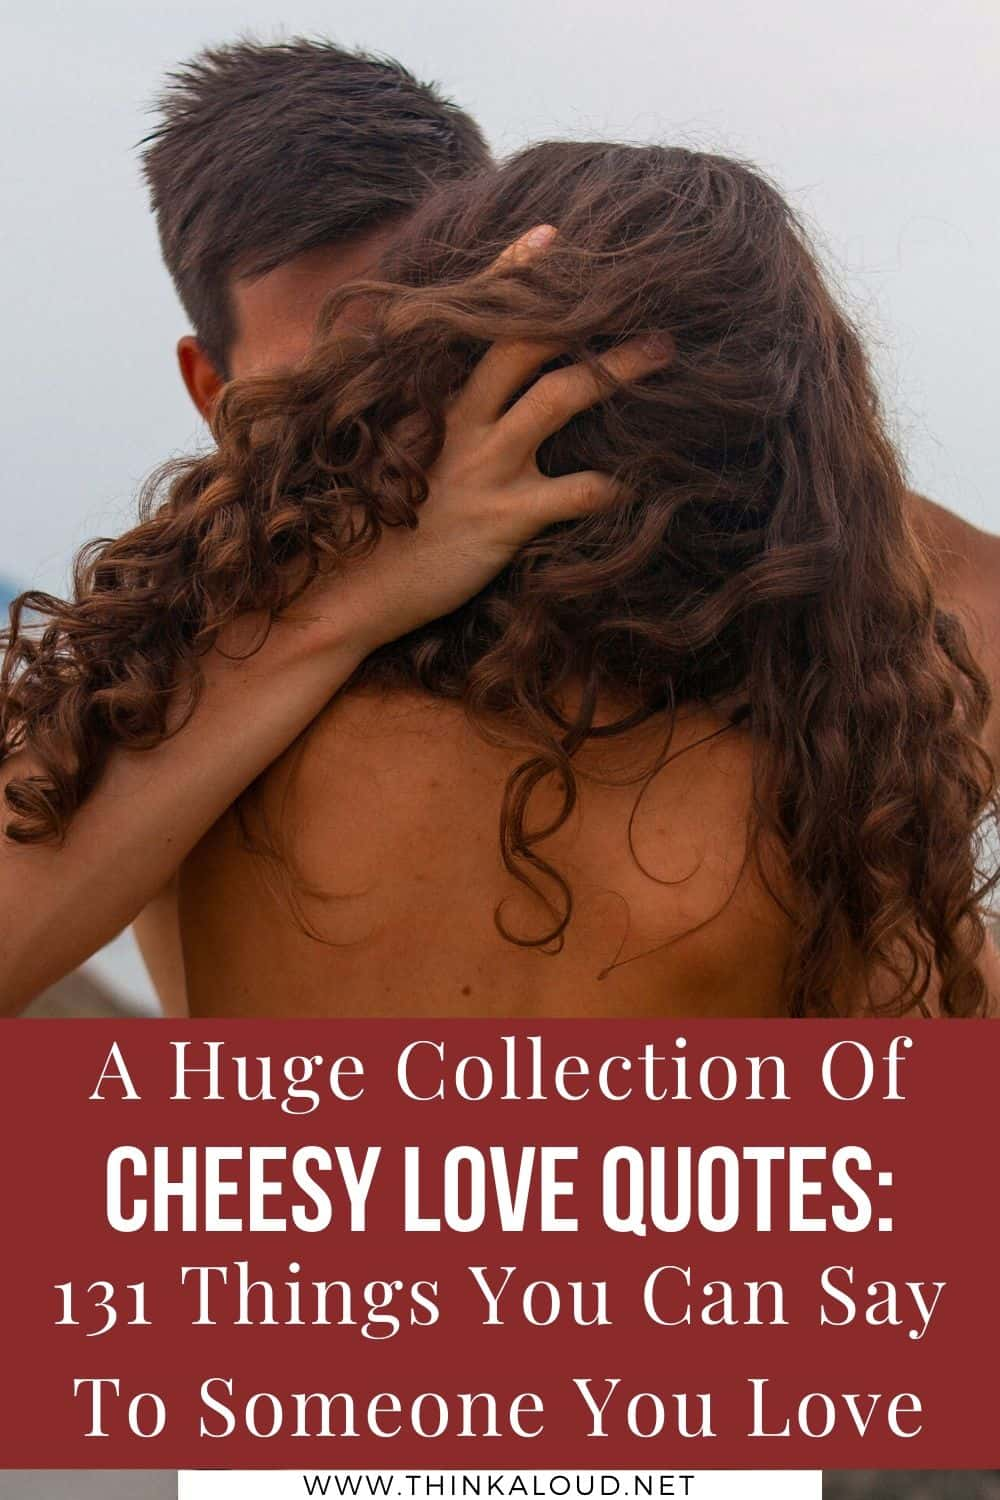 A Huge Collection Of Cheesy Love Quotes_ 131 Things You Can Say To Someone You Love